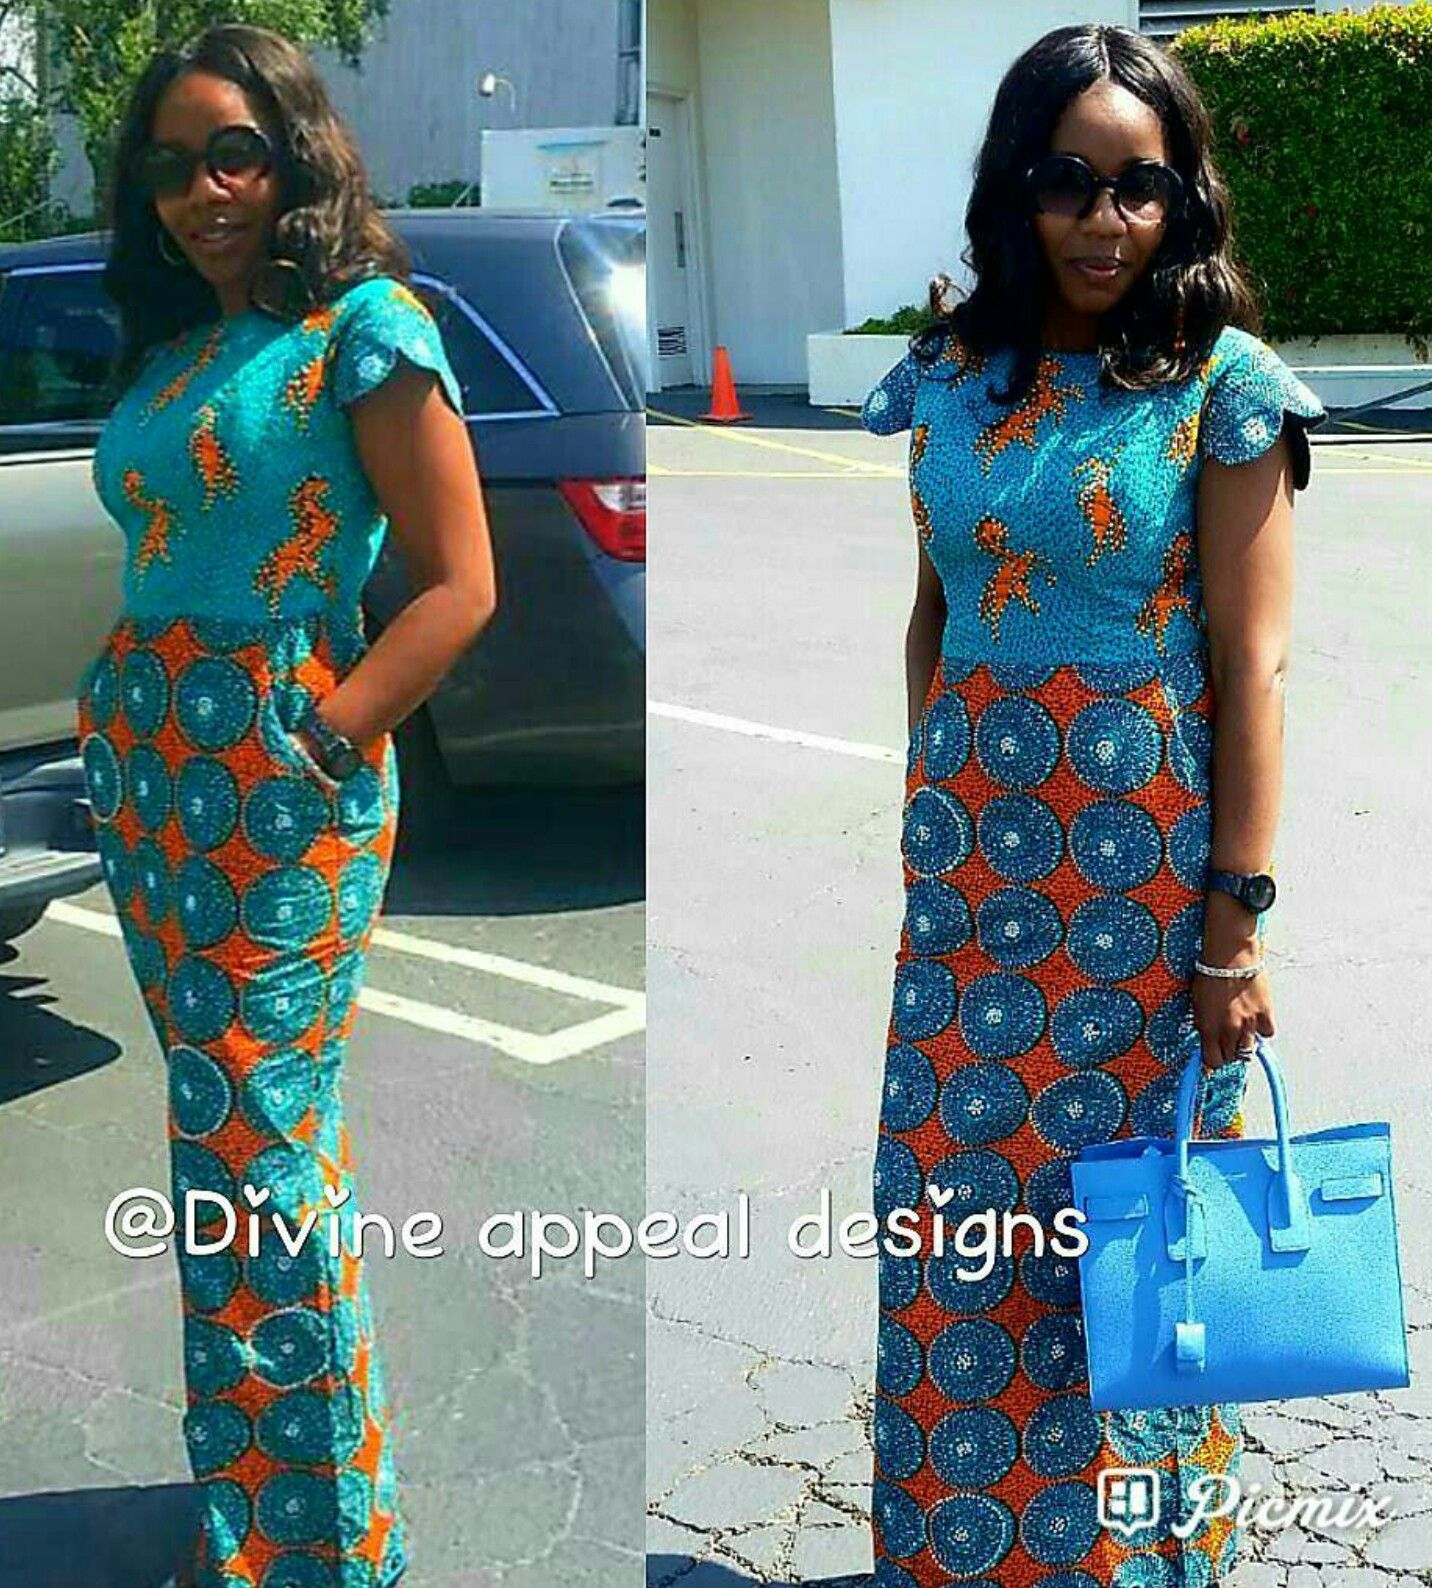 African Fashion - Divine Appeal Designs | Peculiar | Pinterest ...